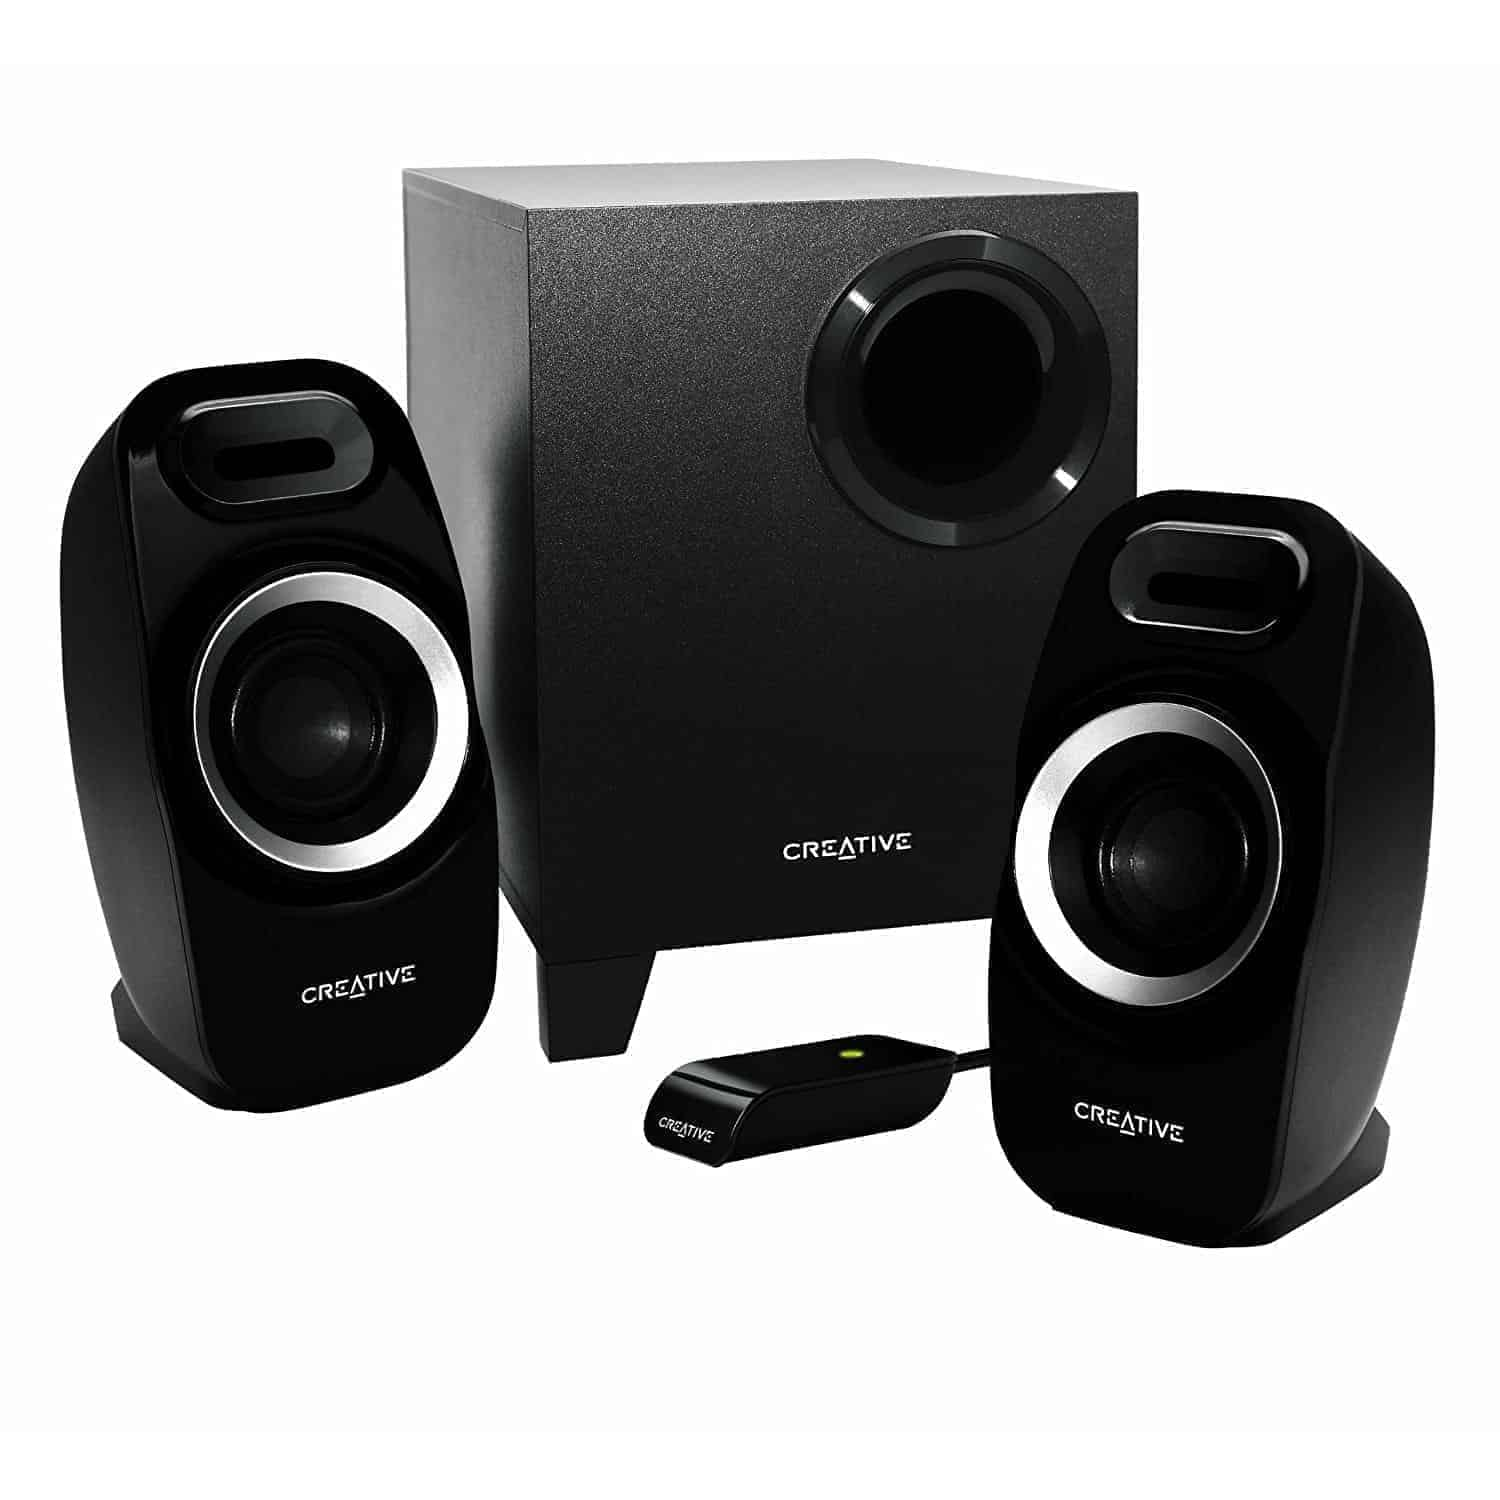 Creative Inspire T3300 2.1 Multimedia Speakers (CT-T3300), Sound Blaster X-Fi Surround 5.1 Pro turns your PC or notebook into a 5.1 entertainment system, featuring SBX Pro Studio technology. Easy to install, it replaces , Creative Sound Blaster X-Fi 5.1 Pro: This little external sound card is ... to send digital audio to a compatible surround-sound amp and a drive, Satyamfilm.com, kartmy.com. kartw.com. kartnp.com, Video Editing Card Video Mixing card